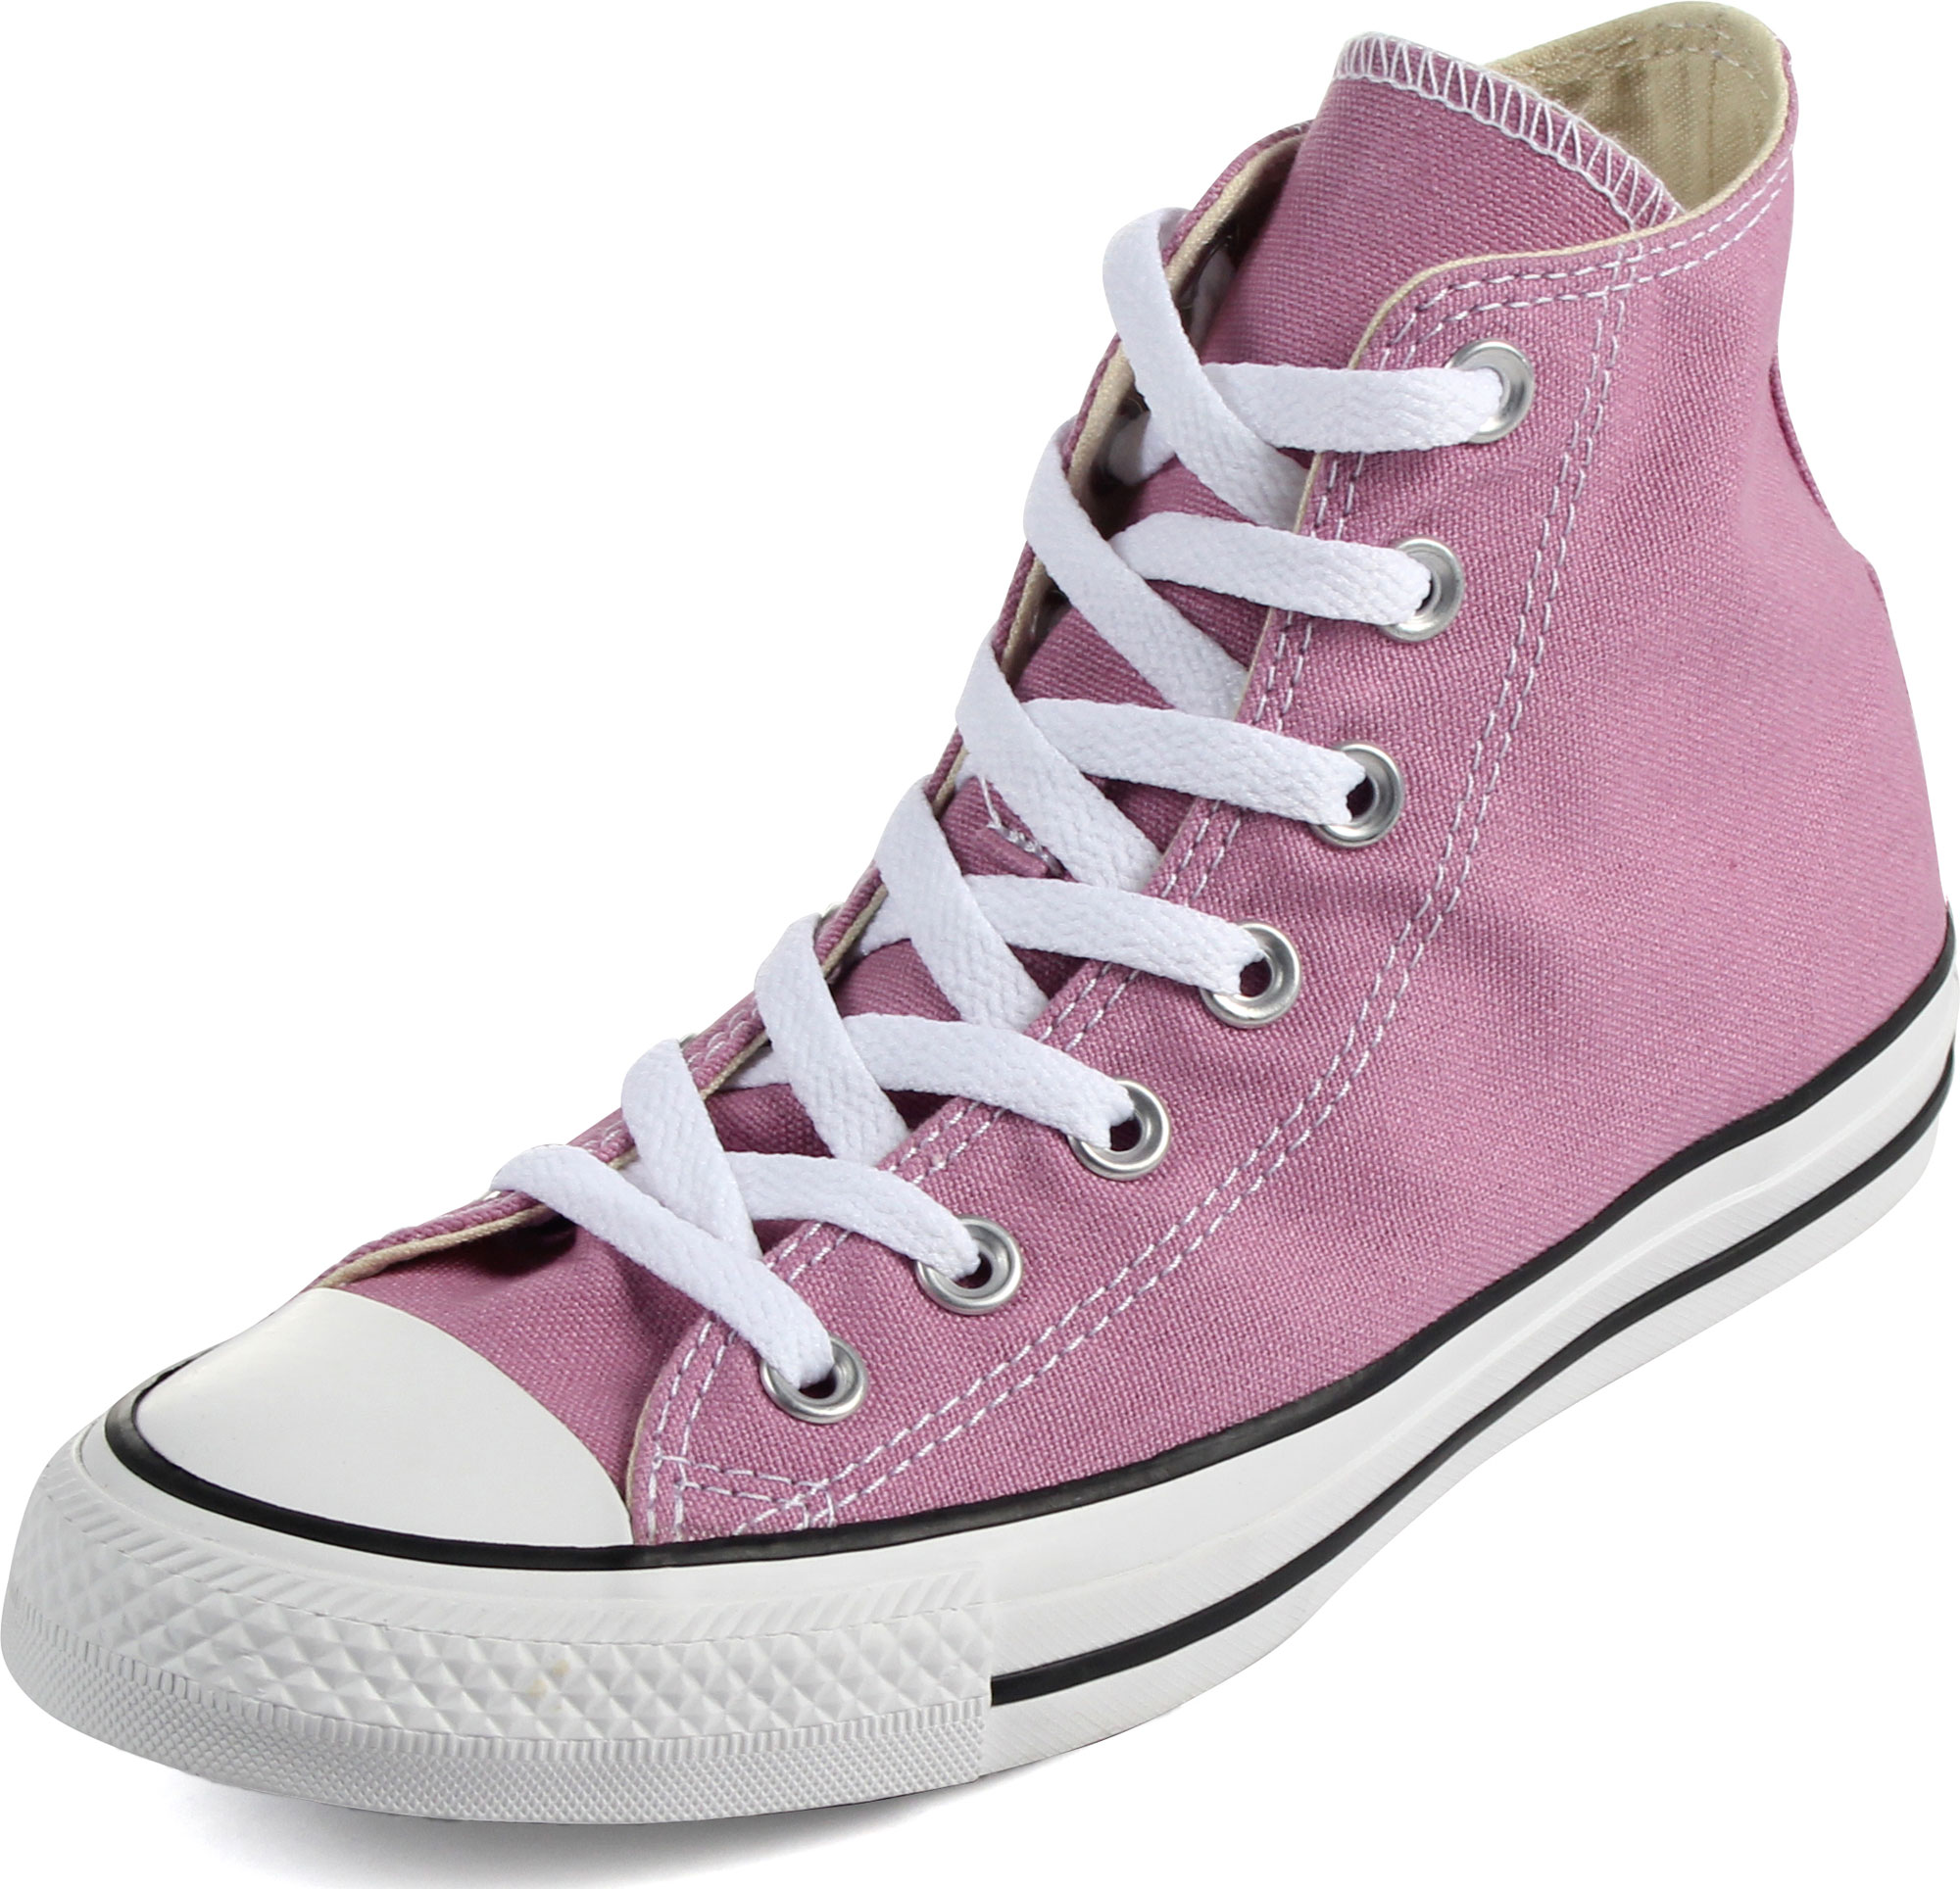 Converse - Chuck Taylor All Star Powder Purple High top Shoes 32bb9cdb0